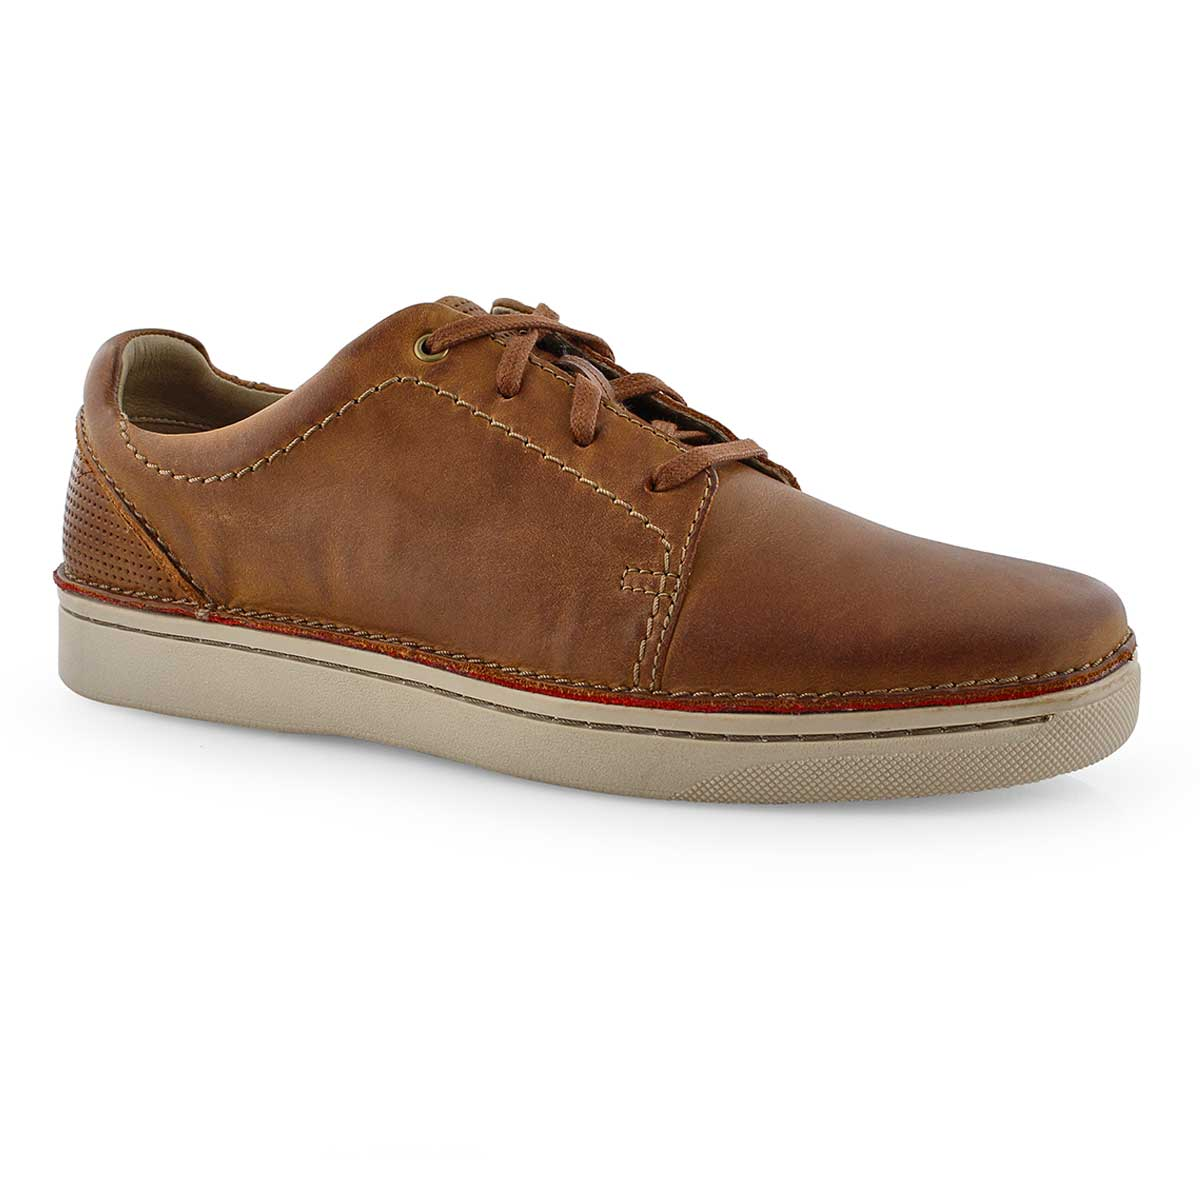 Mns Kitna Stride tan casual lace up